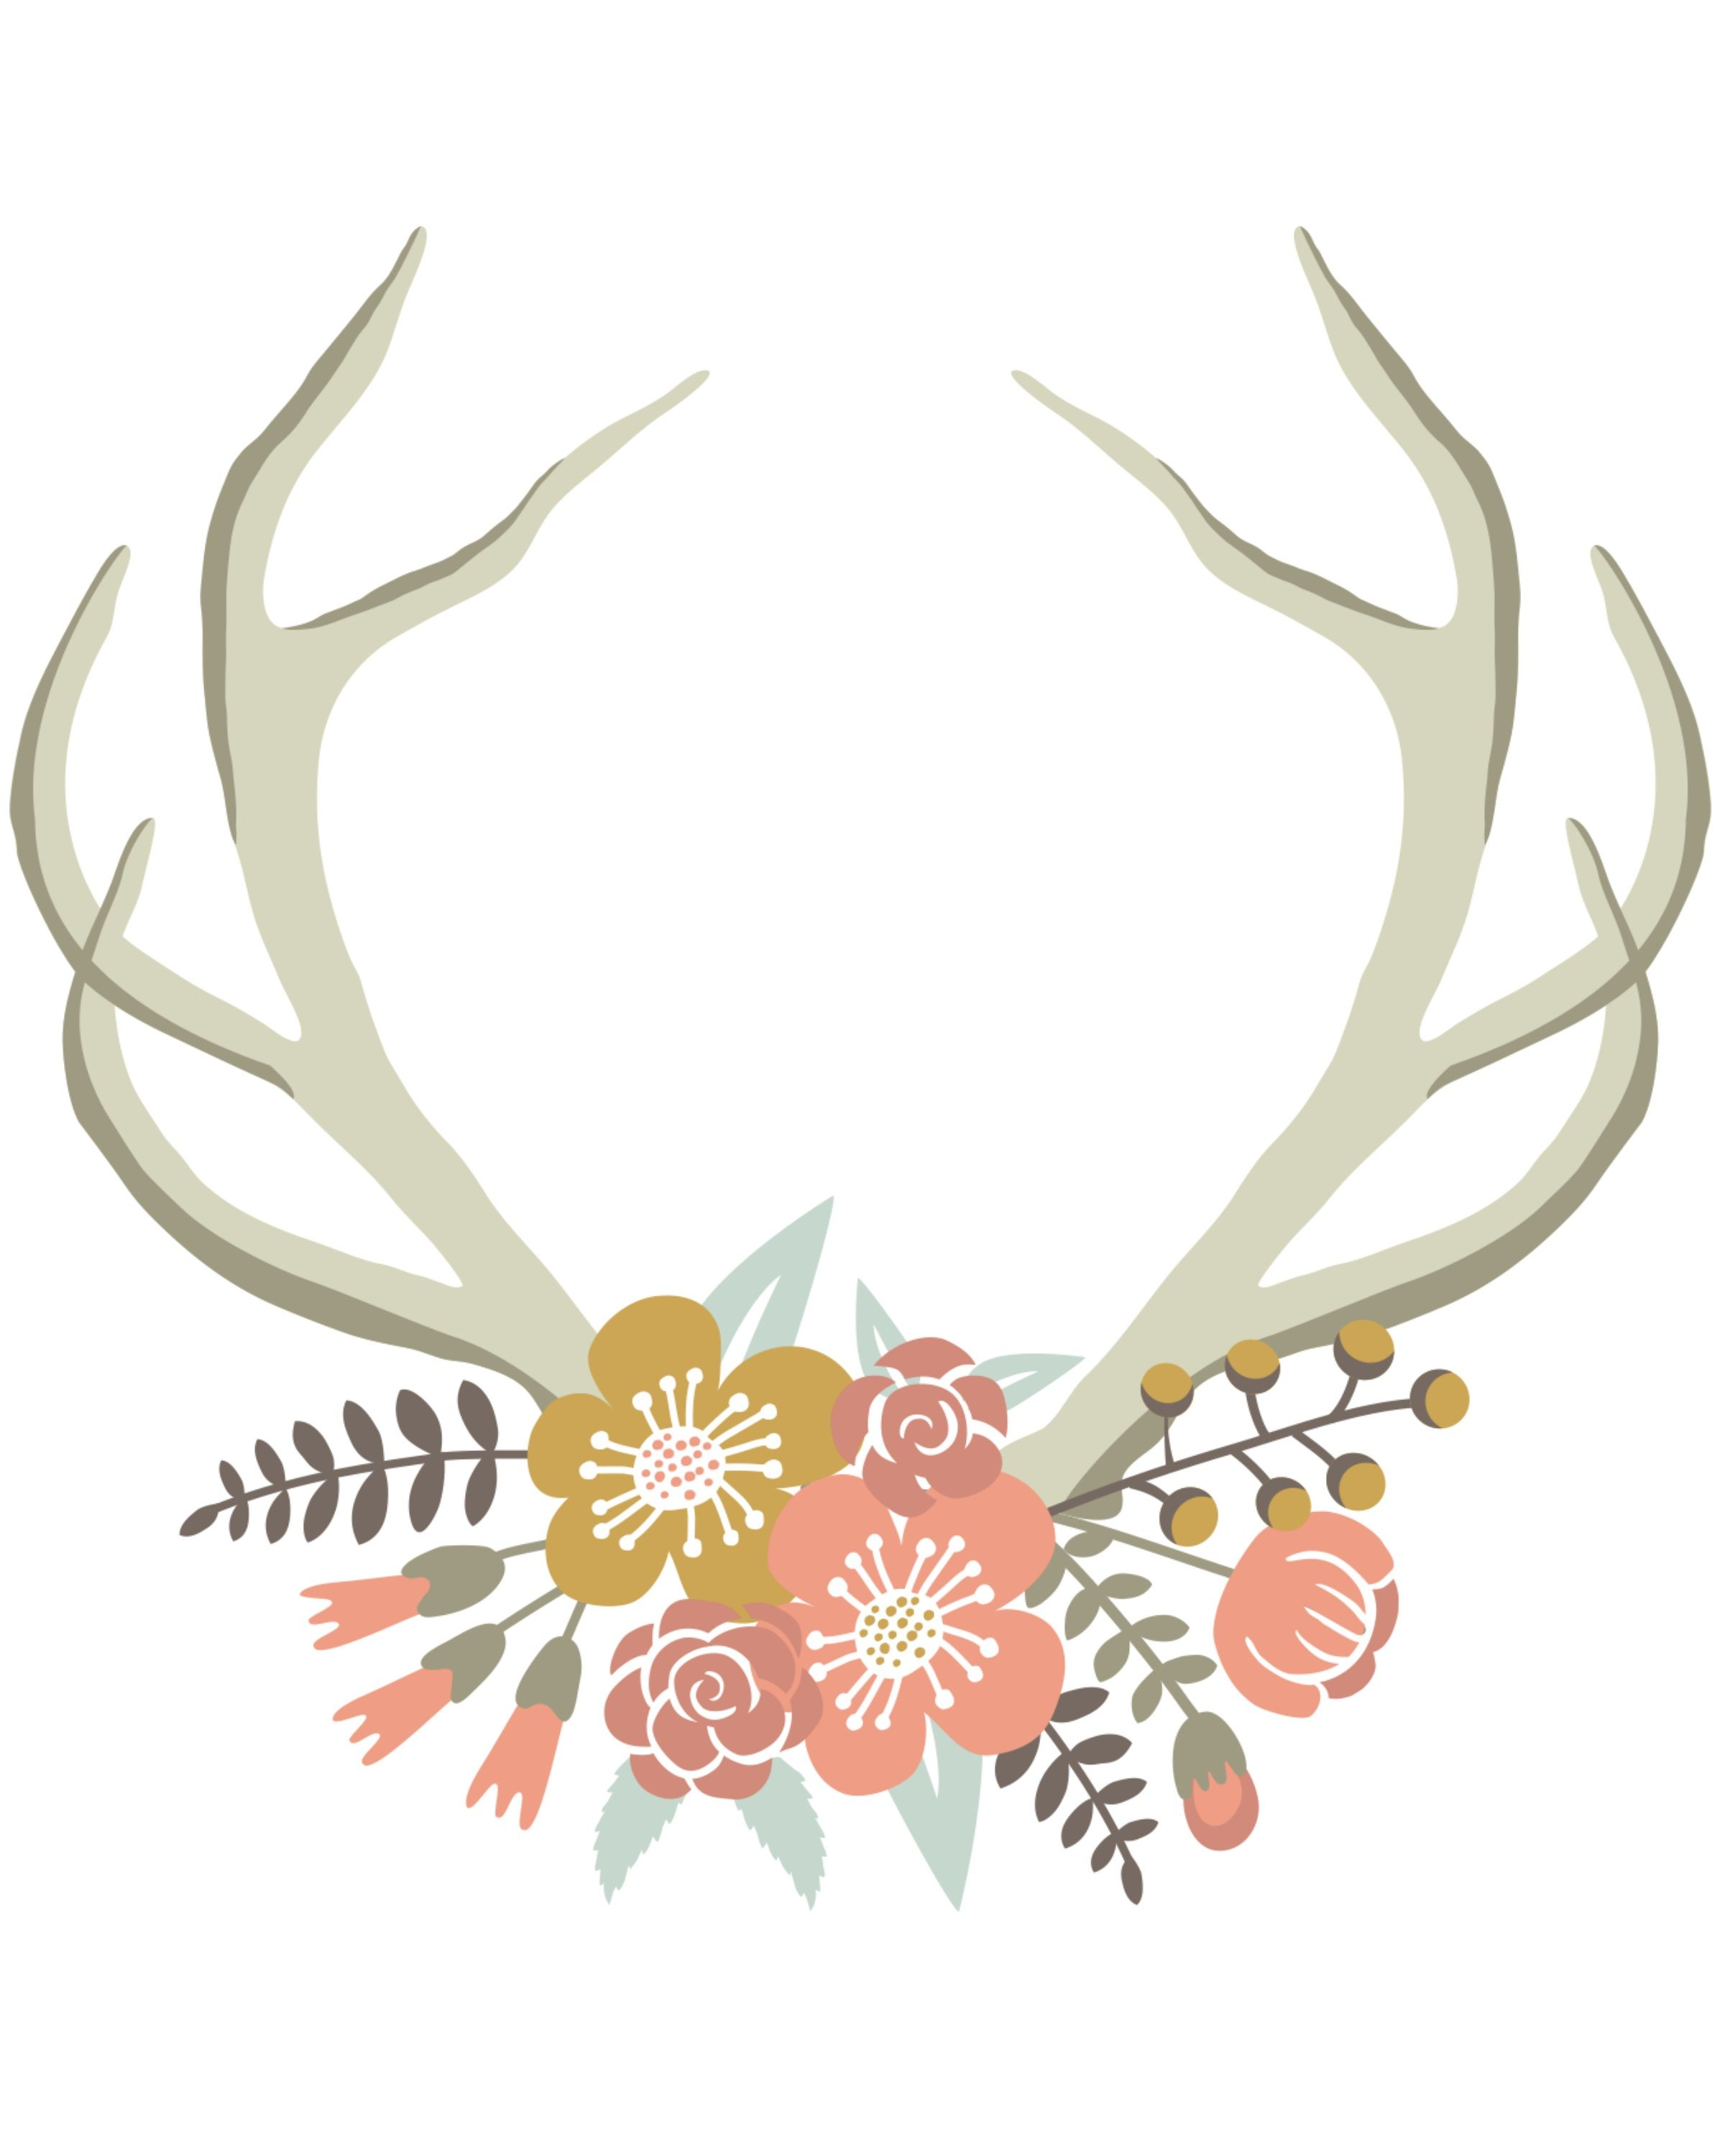 Antlers clipart printable. Floral deer crown free